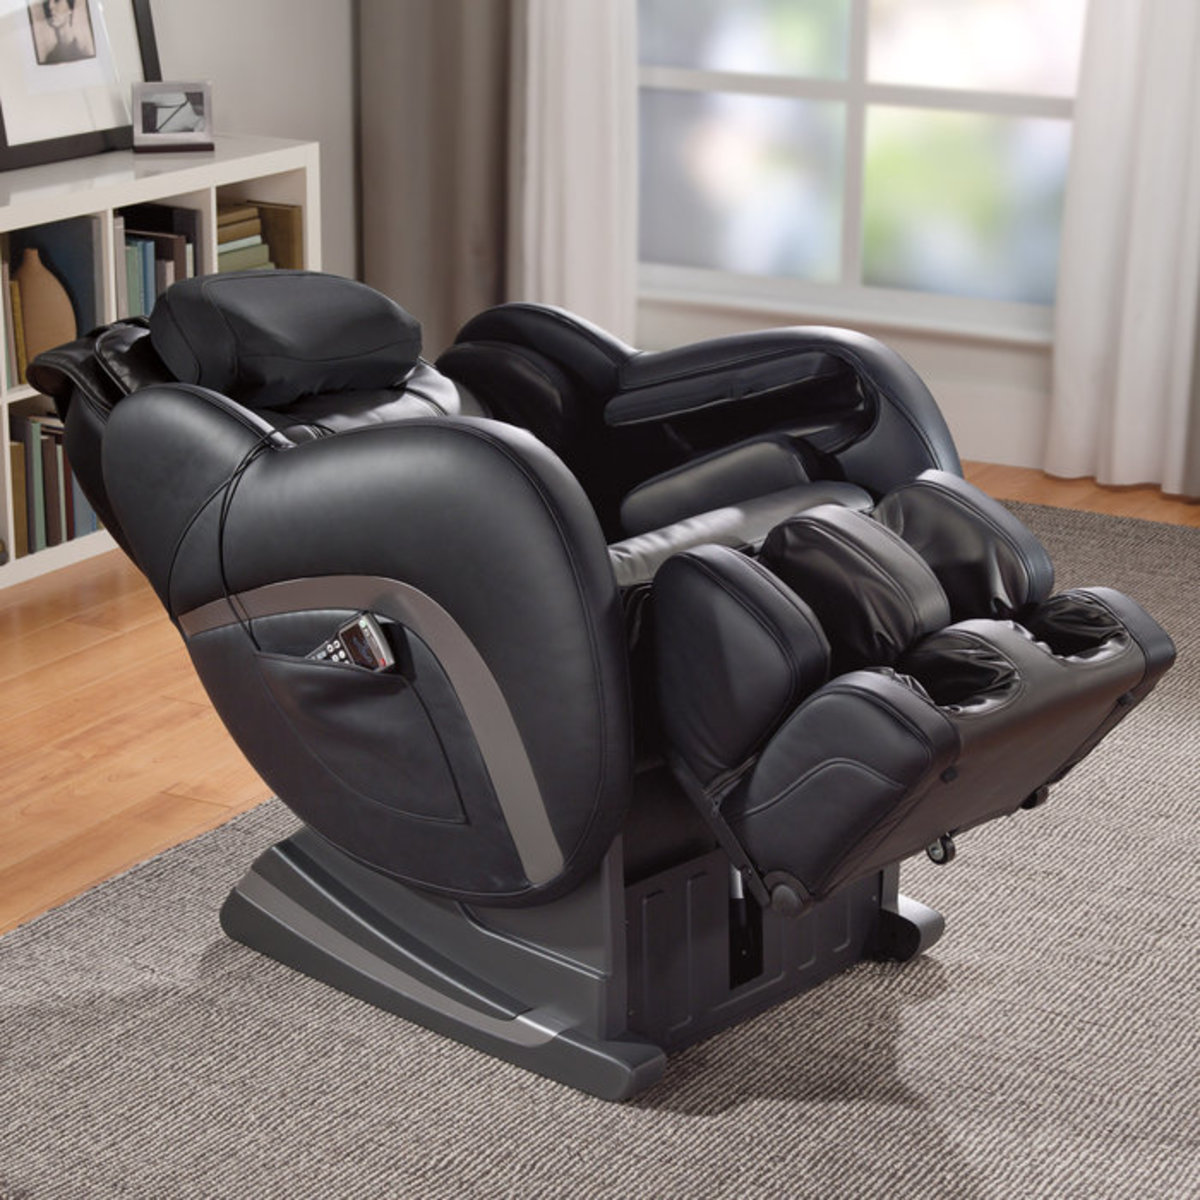 Ultimate Buying Guide For Anti Gravity Chair Or Zero